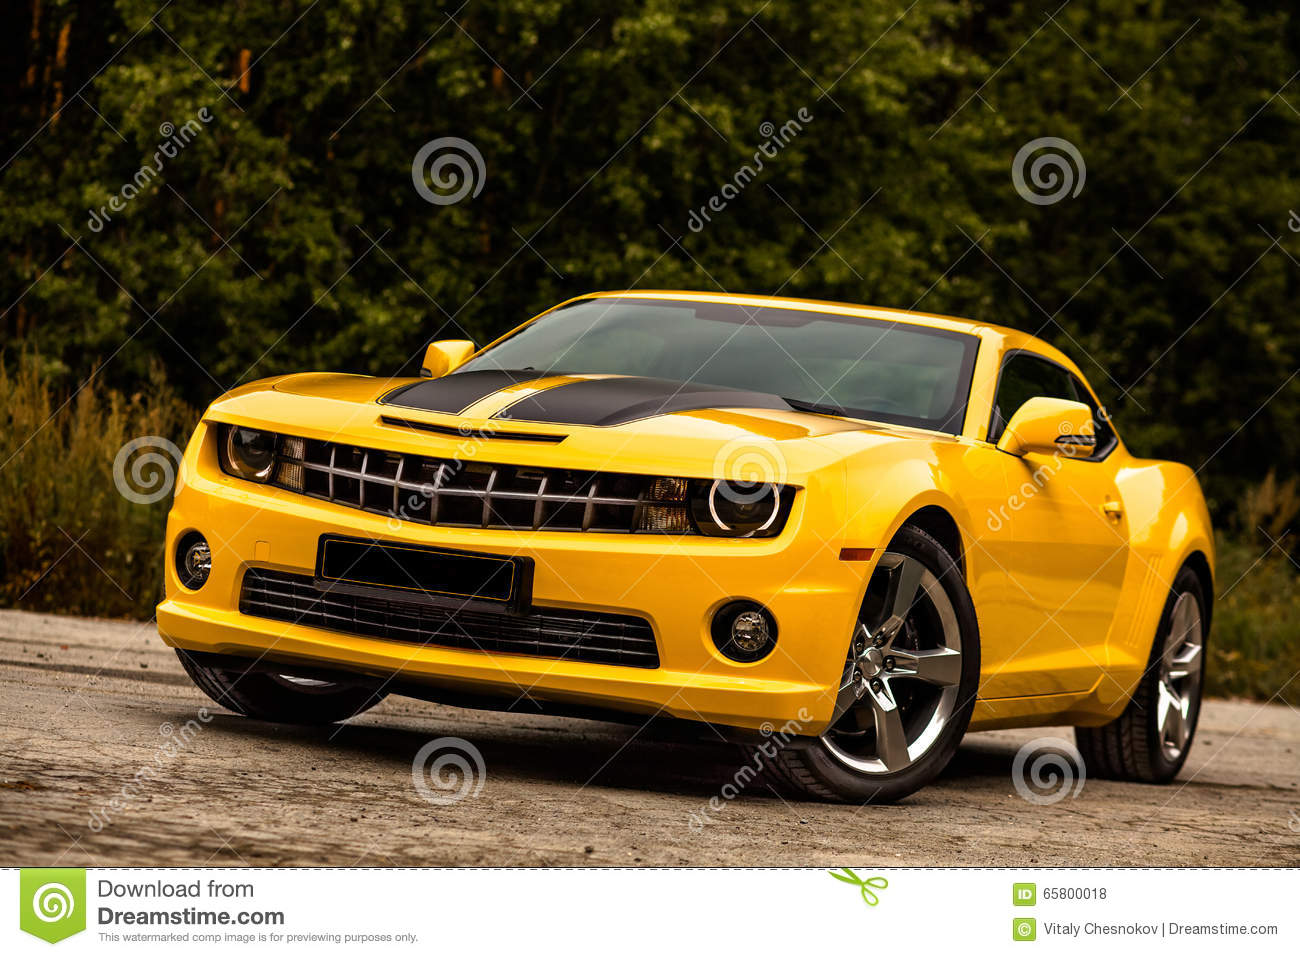 Muscle Car Bumblebee Stock Photo Image Of Coupe Show 65800018